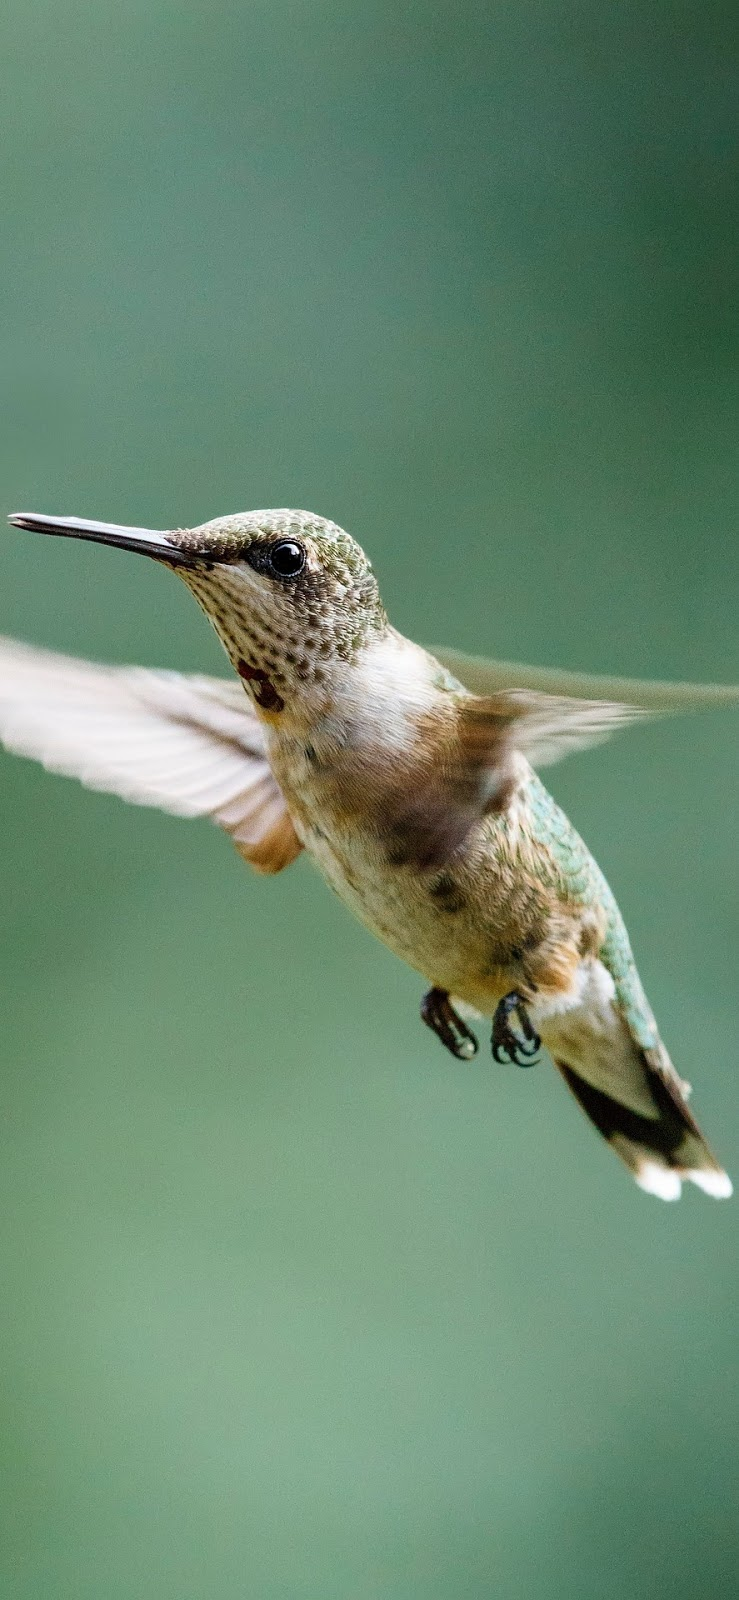 A ruby-throated hummingbird hovering.